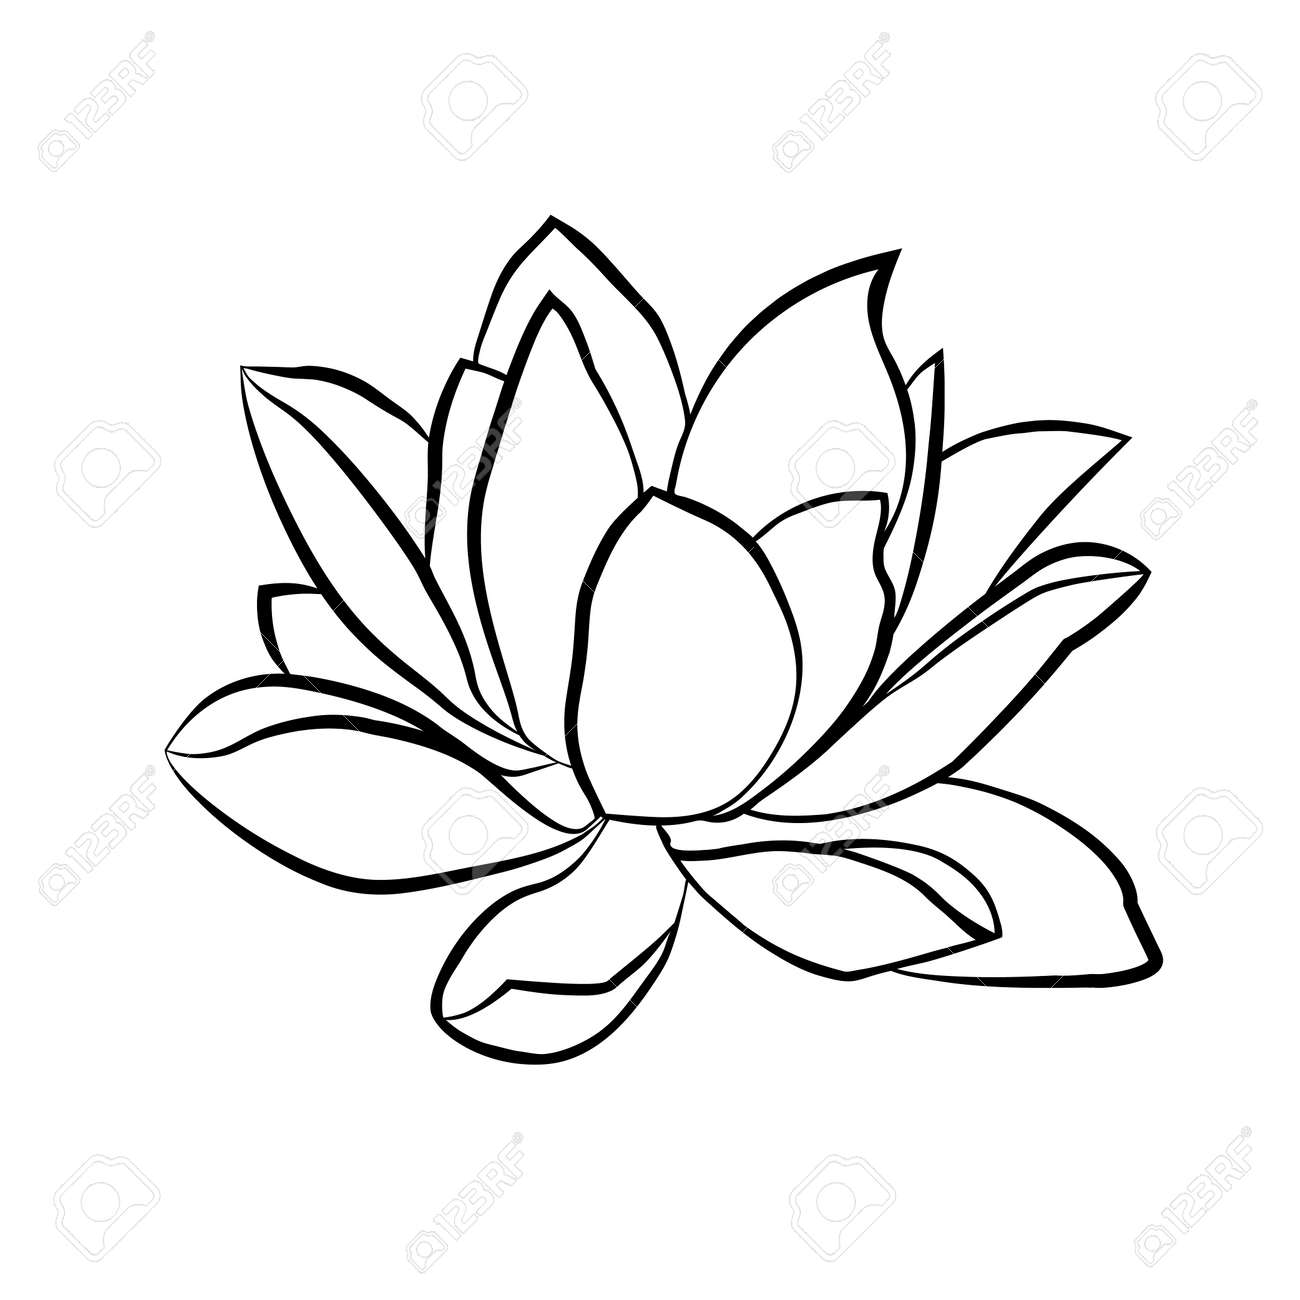 Lotus flowers icon. The black line drawn on a white background - 47657578